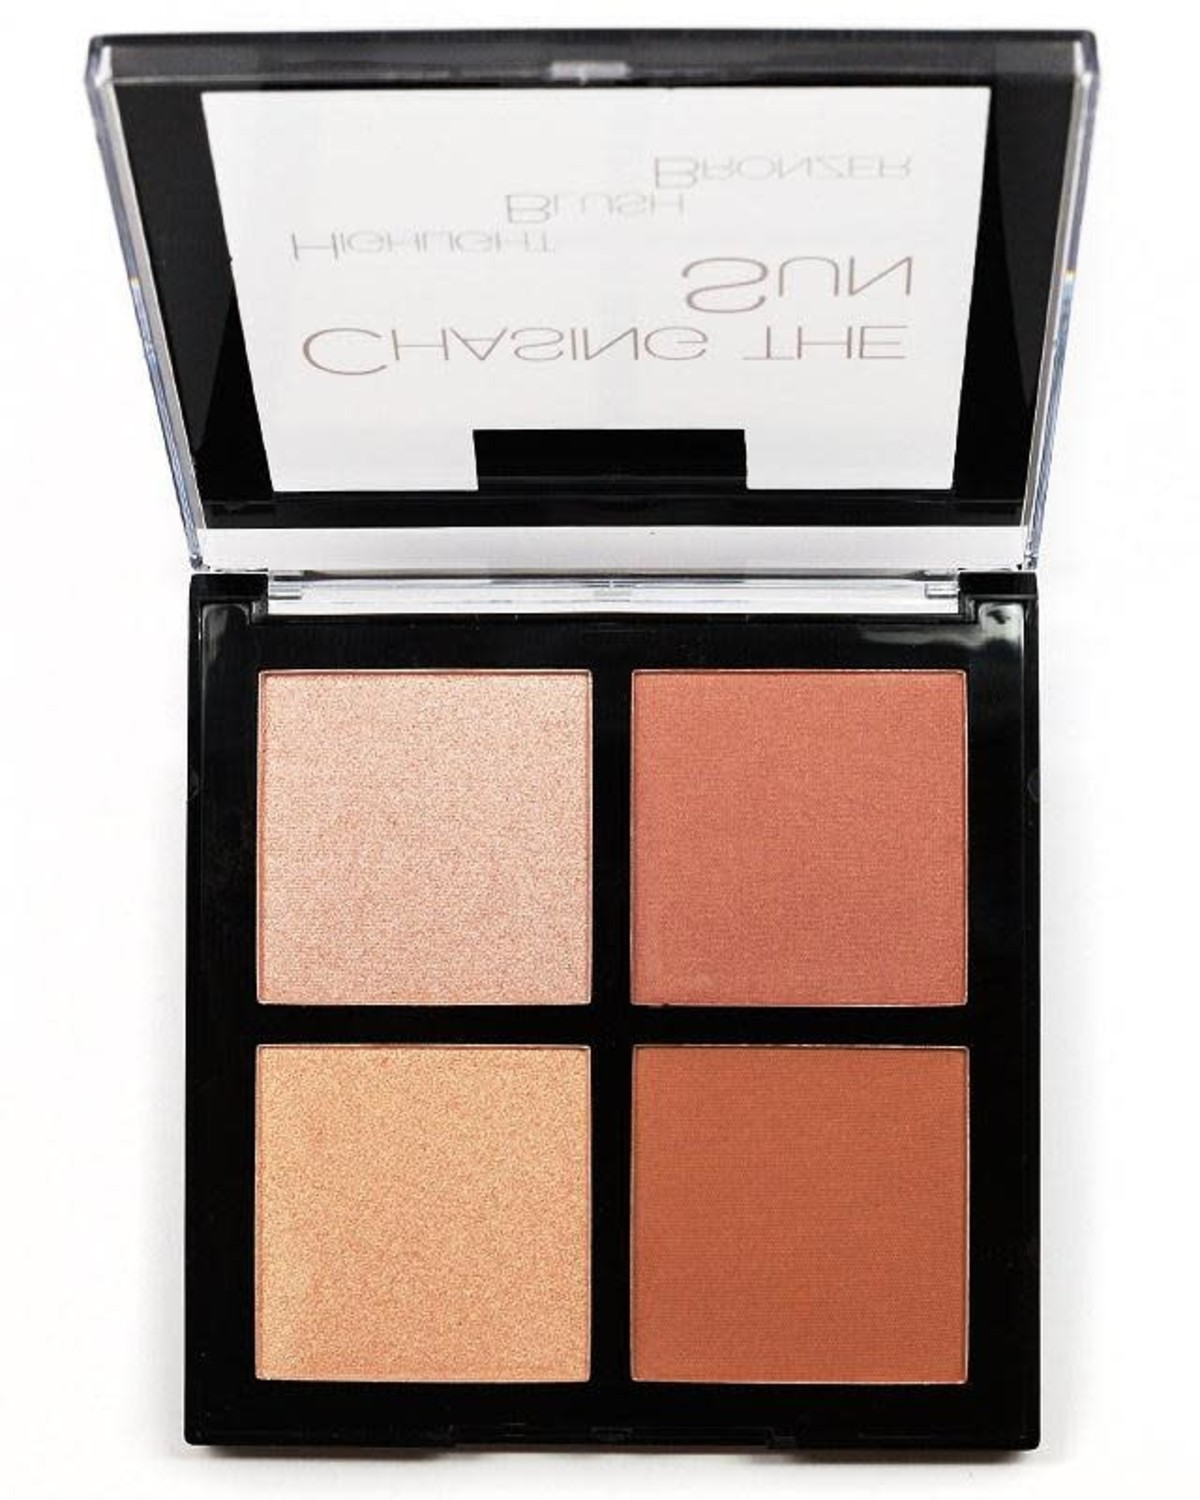 Chasing The Sun Highlight/Blush/Bronzer